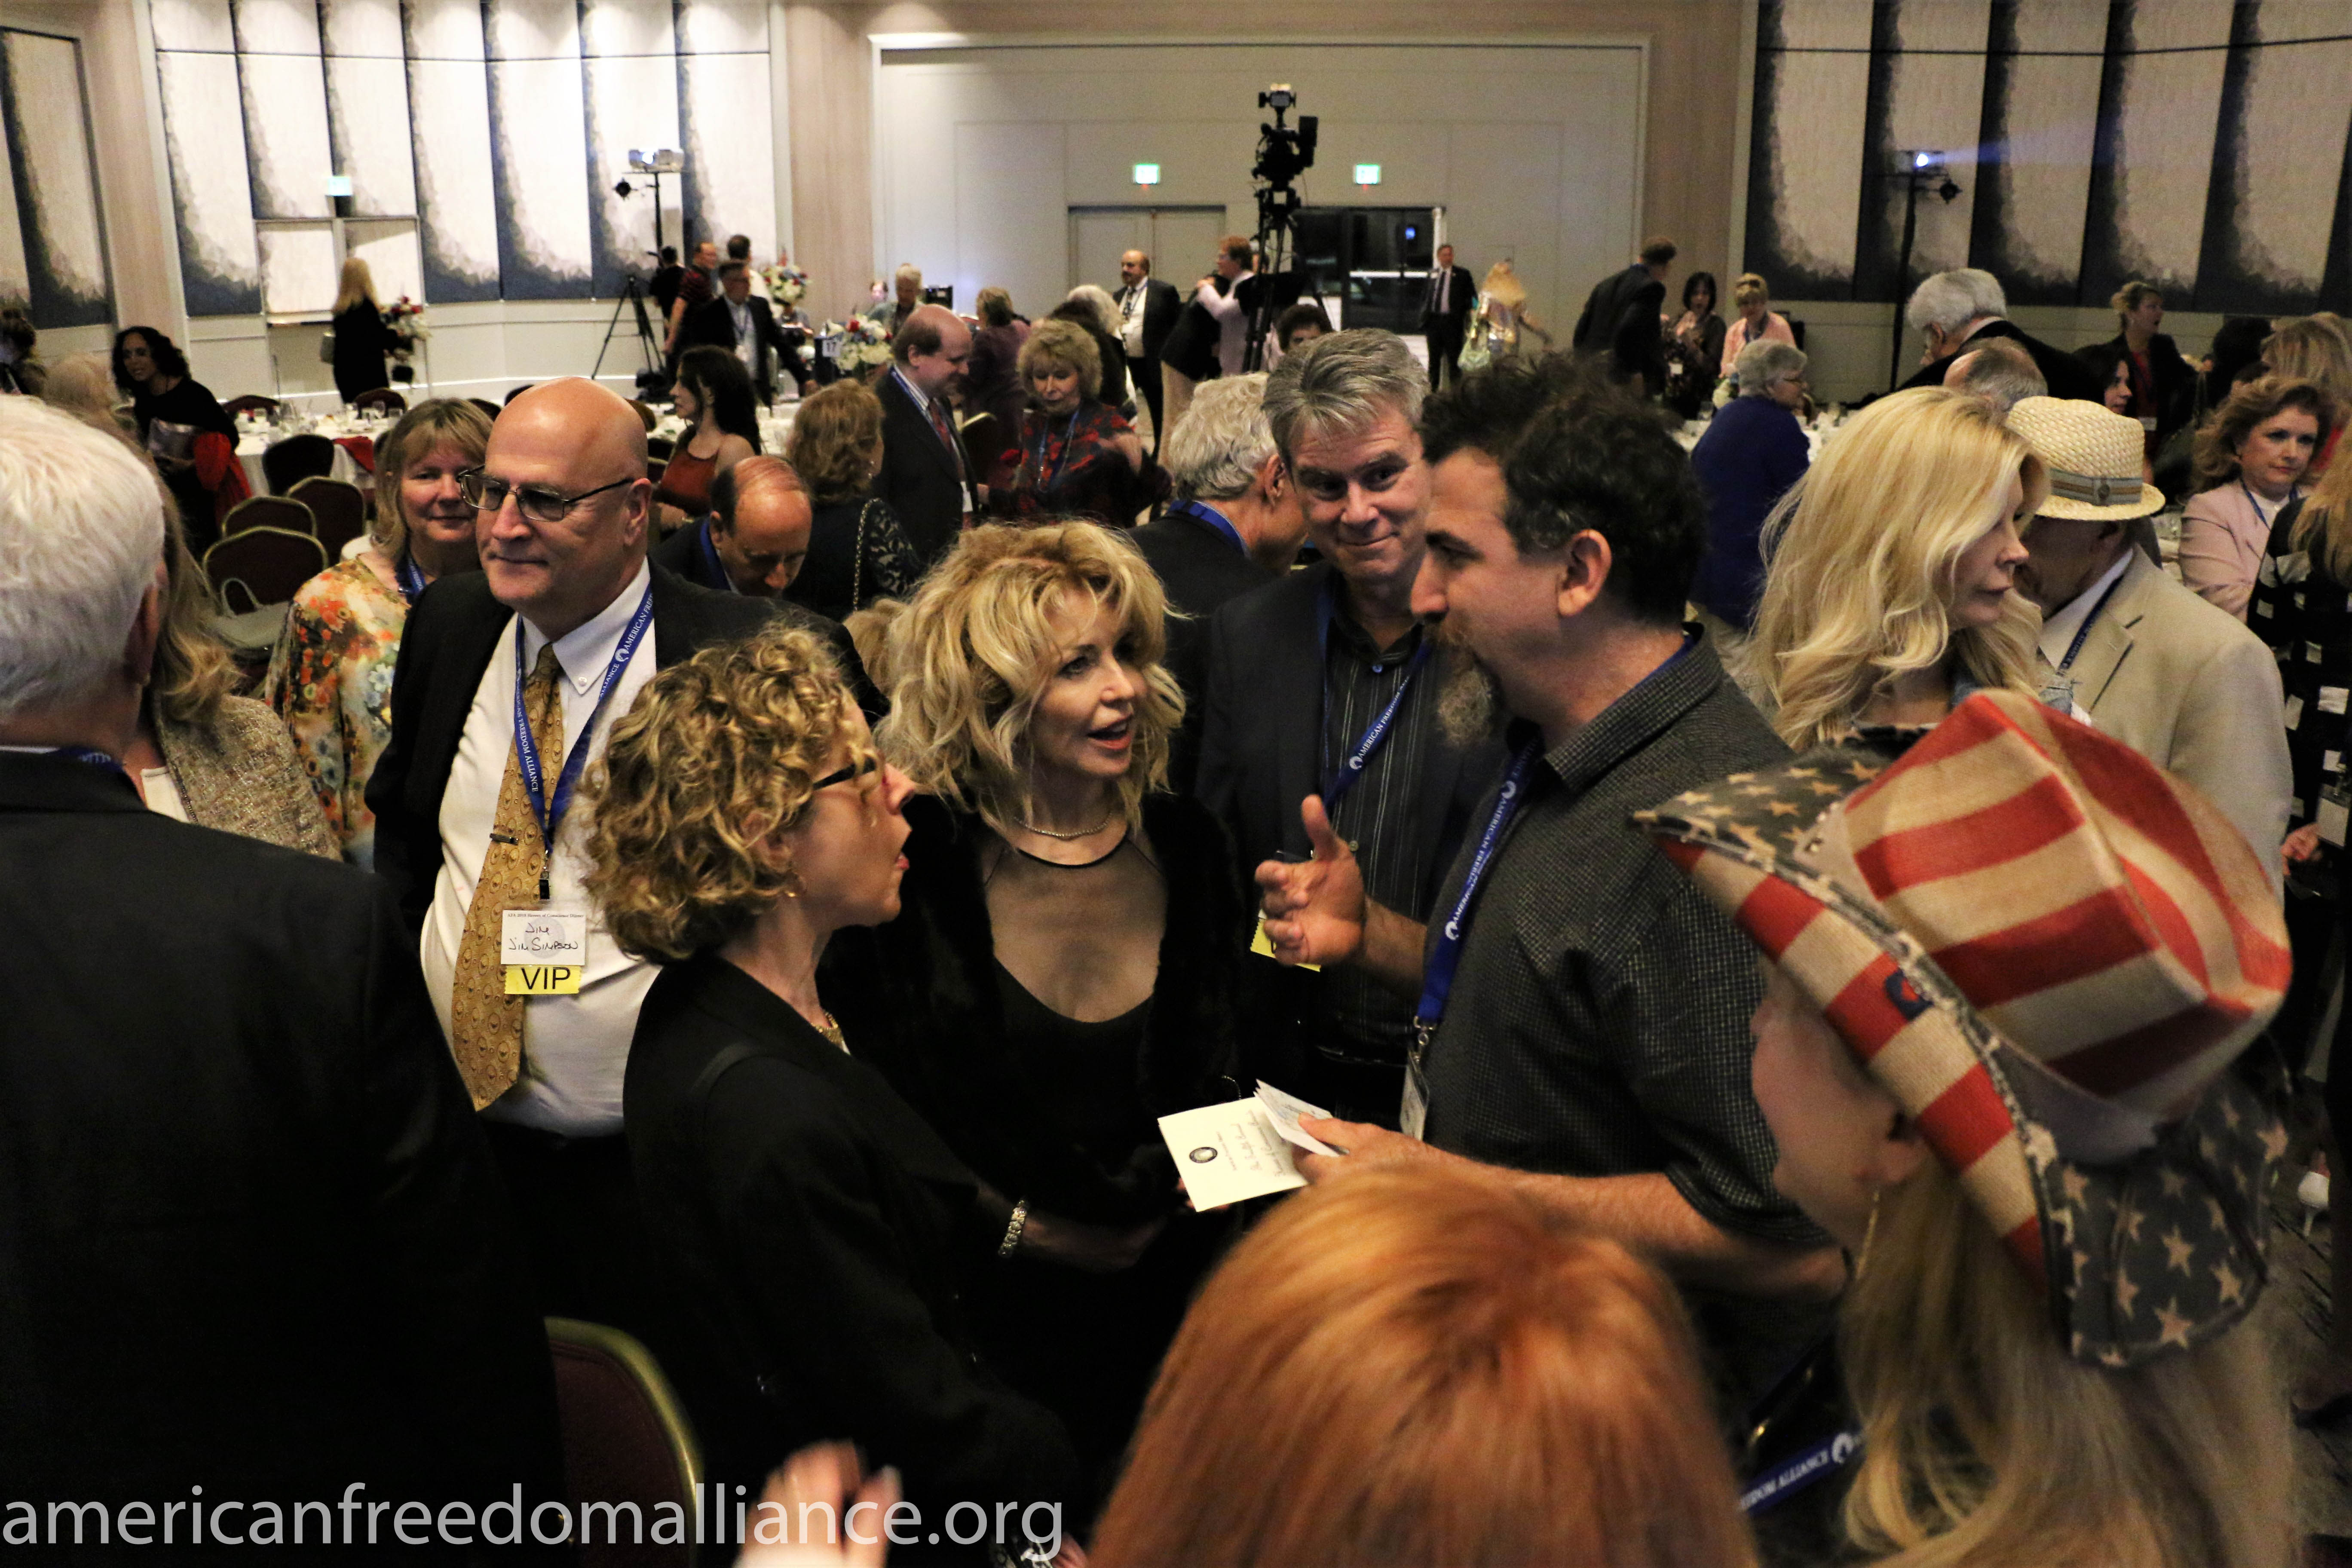 Dinner's Over - Jim Simpson, Heather Mac Donald, Ashley Lewis, Bill Whittle